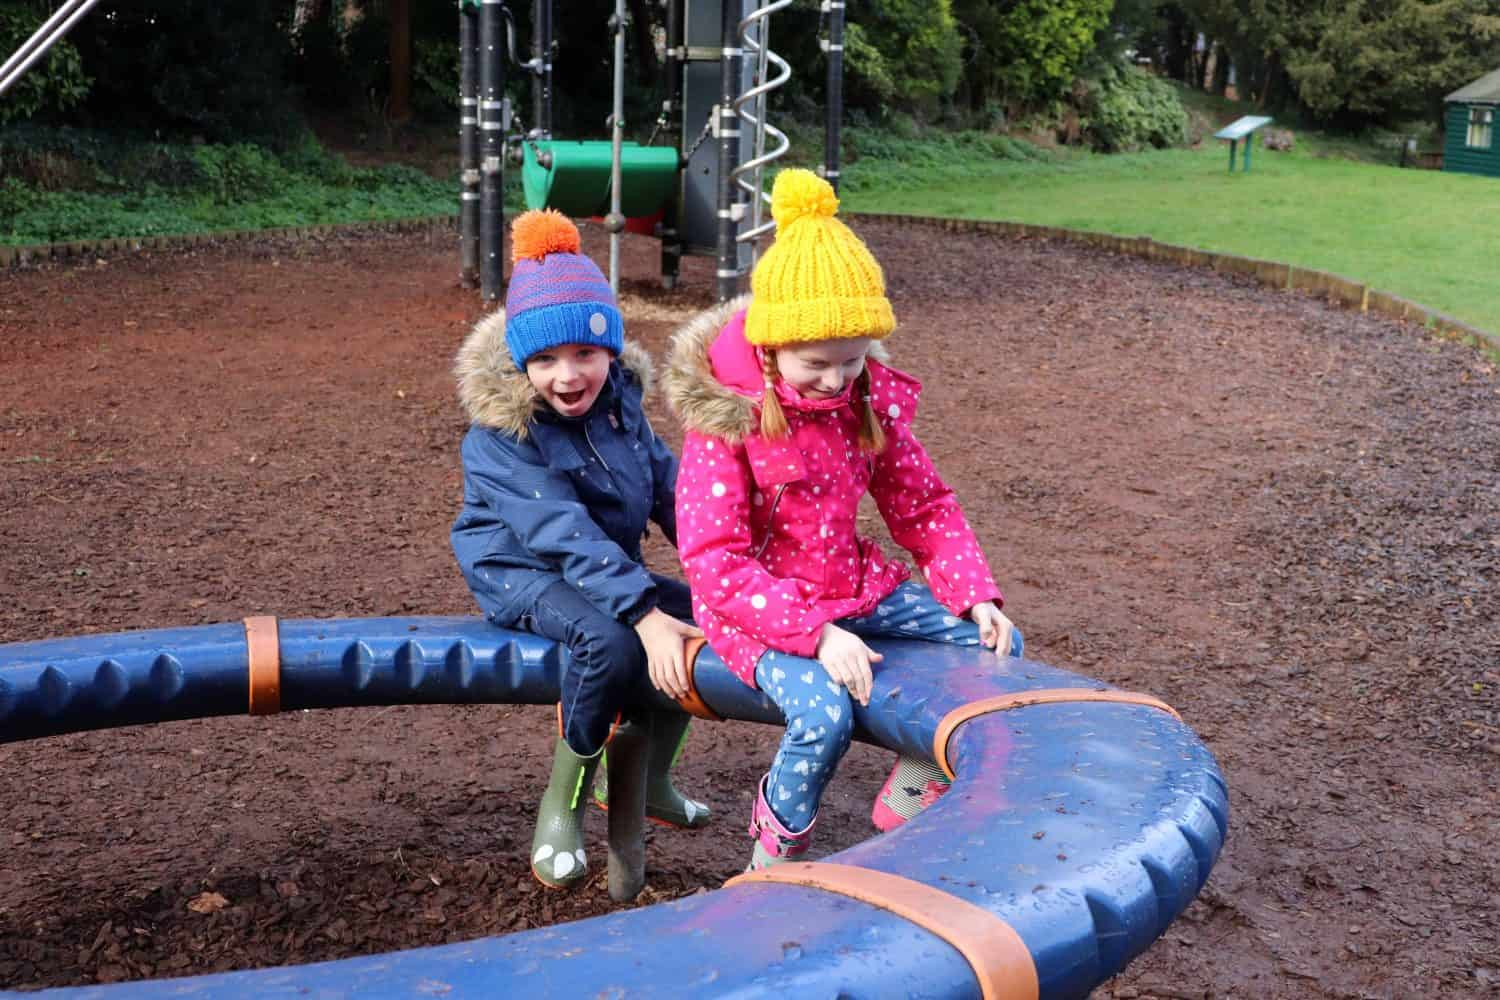 A Family Day Out at Bletchley Park playground